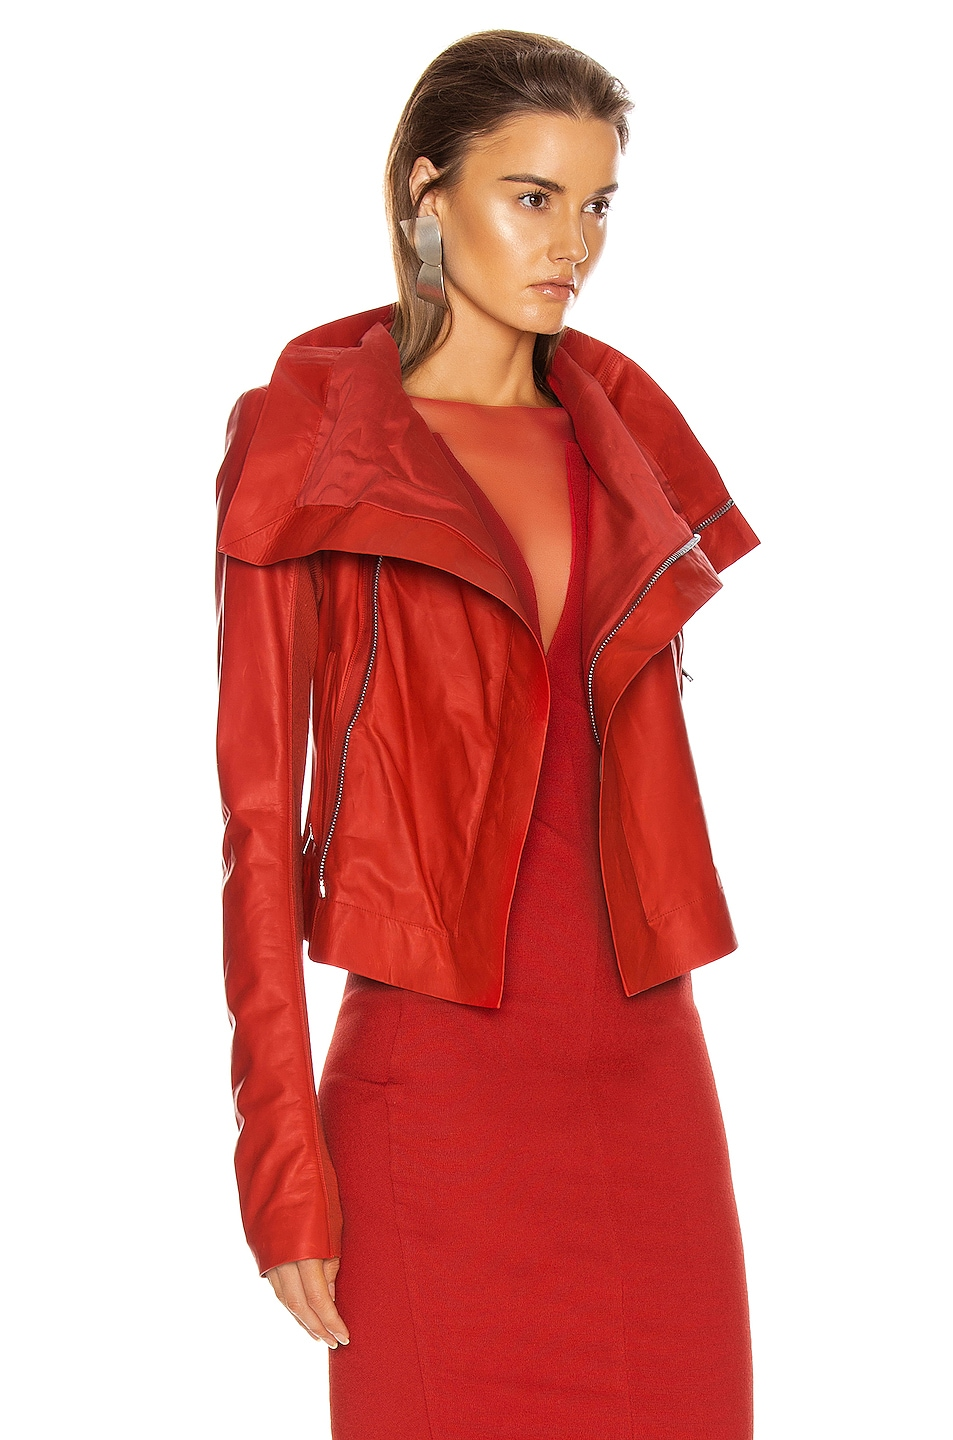 Image 3 of Rick Owens Leather Biker Jacket in Cardinal Red